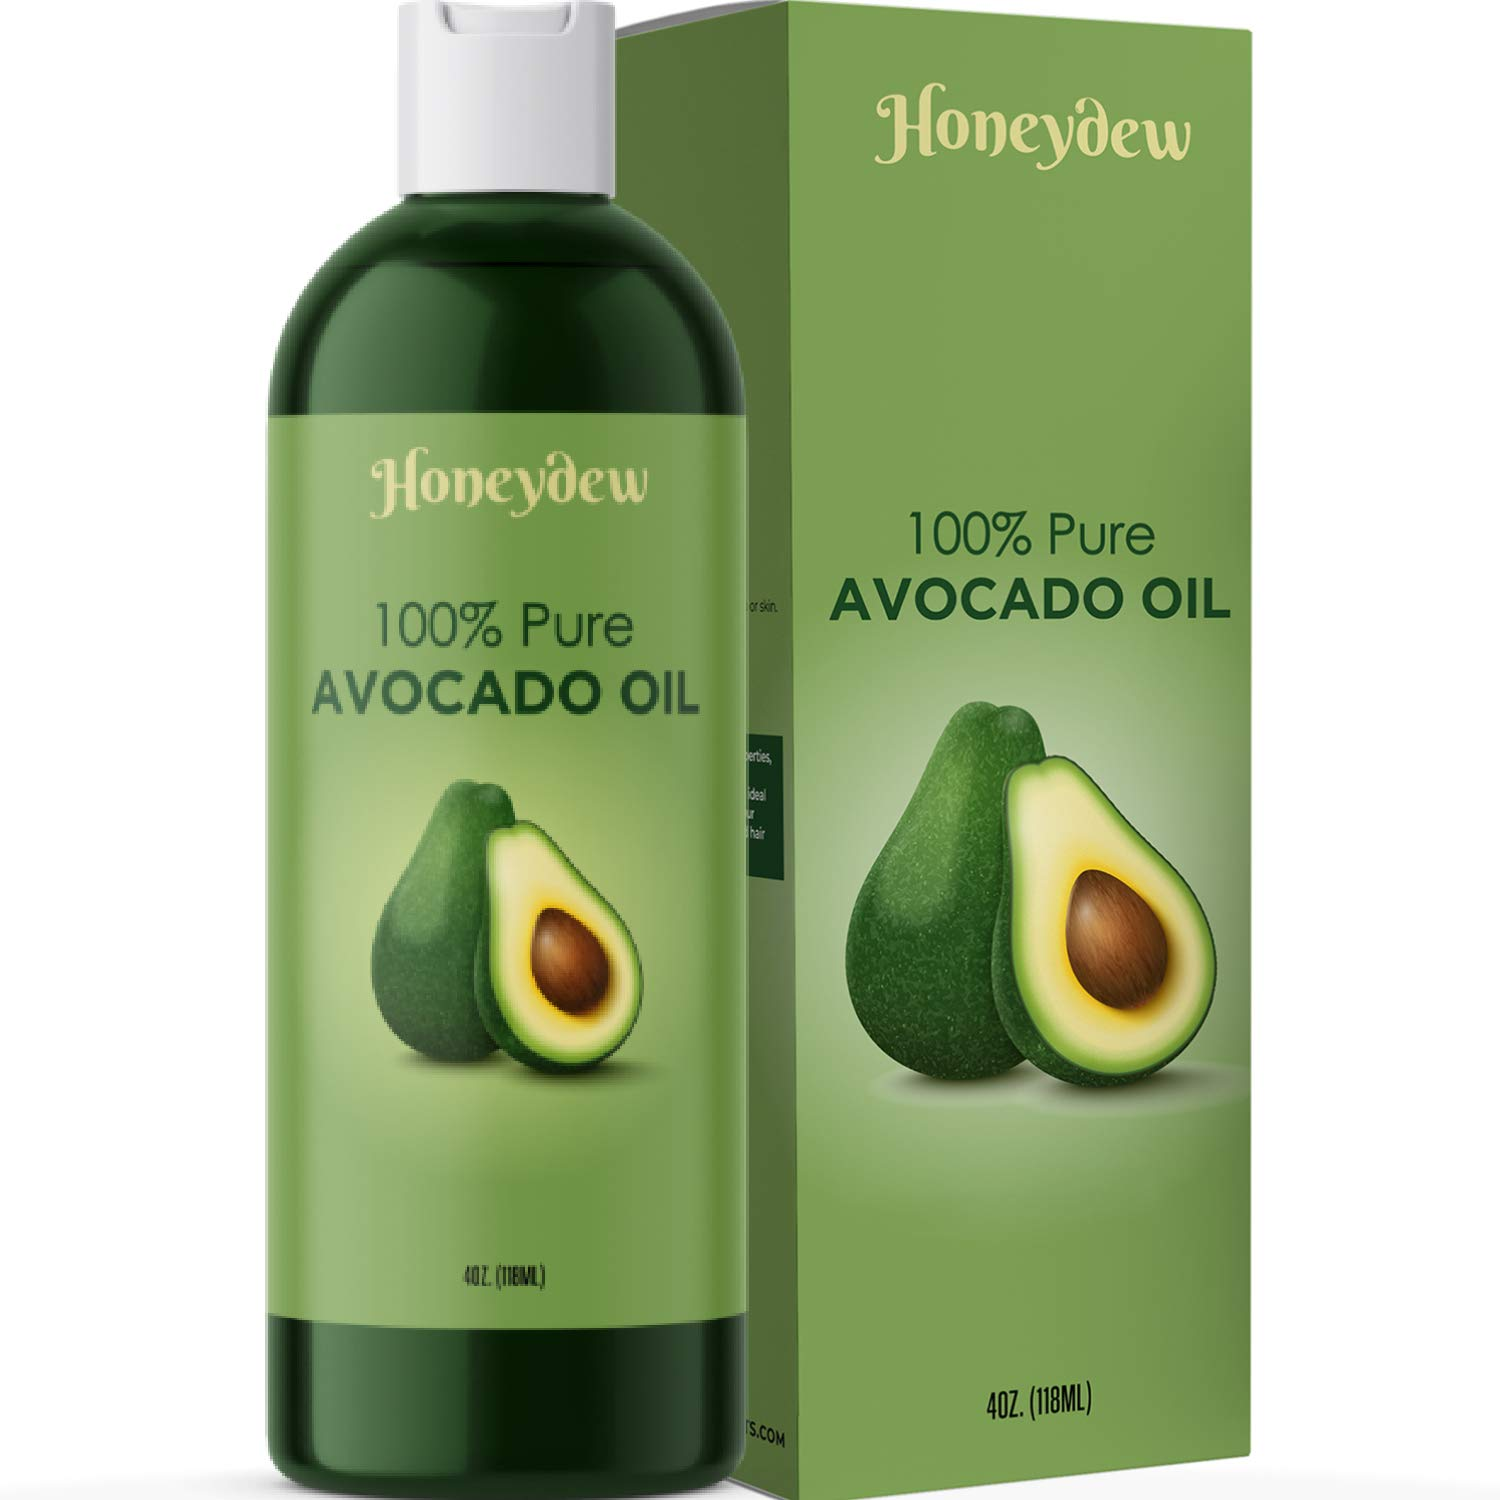 Avocado Oil for Hair Skin and Nails - Cold Pressed Avocado Oil 100% Pure Carrier Oil for Essential Oils Mixing and Nourishing Hair Moisturizer for Dry Hair - Anti Aging Pure Avocado Oil for Skin Care